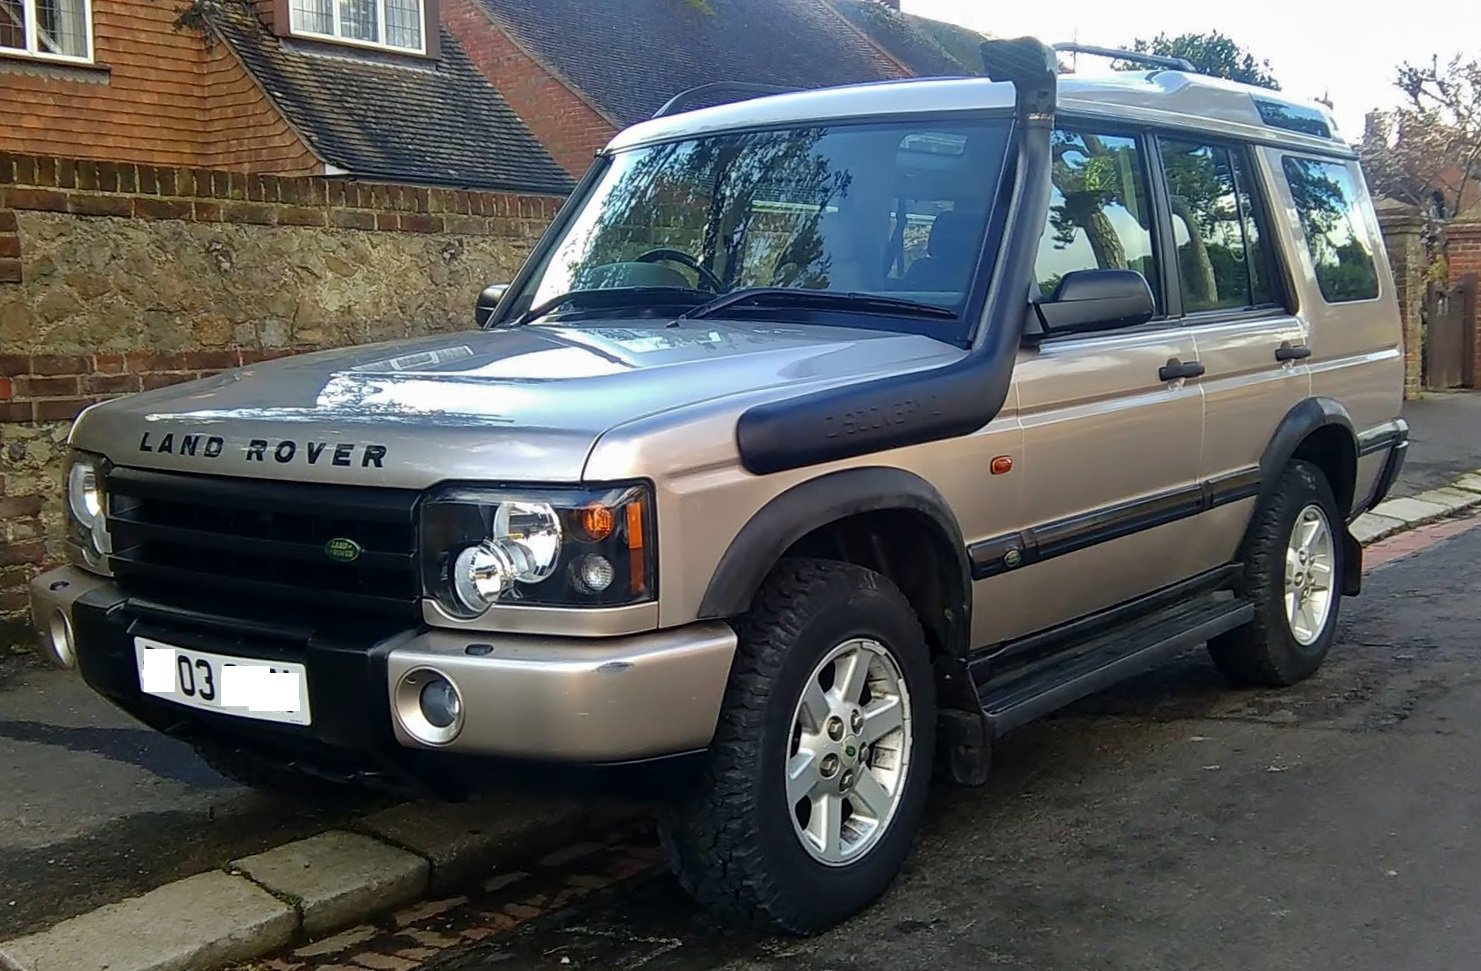 2003 Discovery TD5 PX SWAP Car 4x4 Nissan Toyota Honda For Sale (picture 1 of 6)